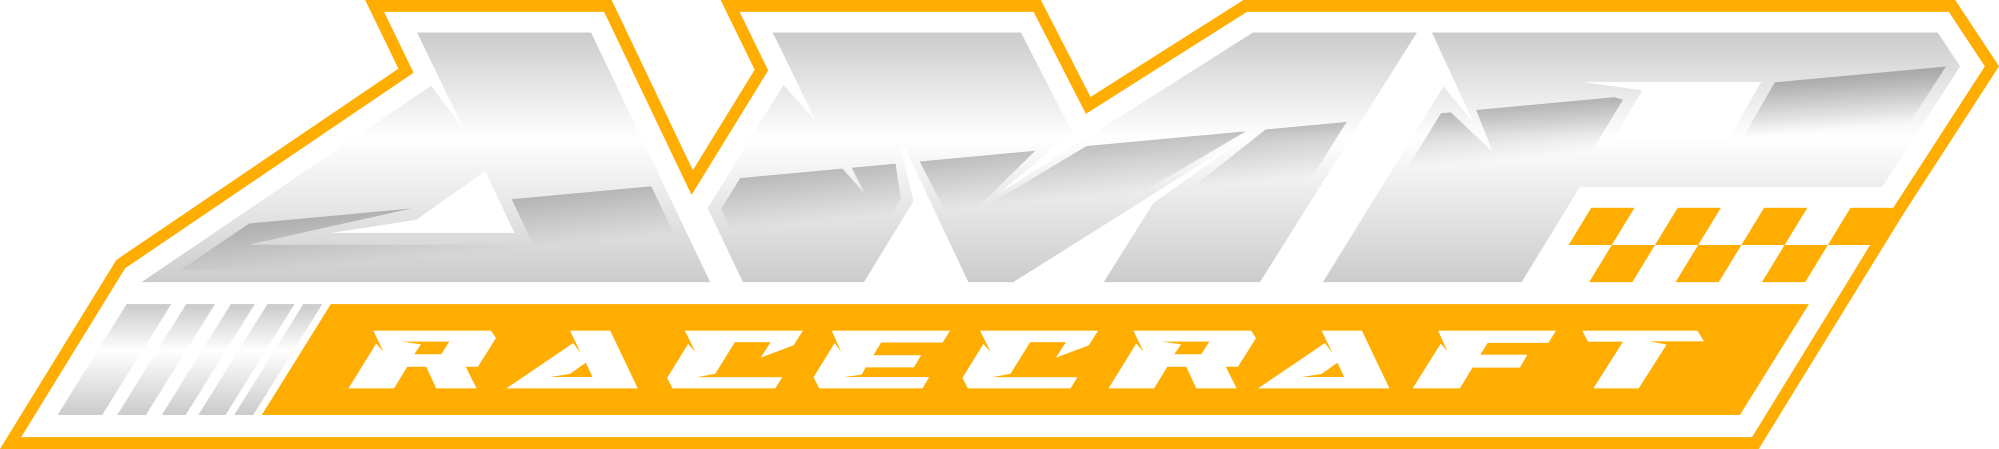 Unforgettable Logo for Motorcycle Racing Company